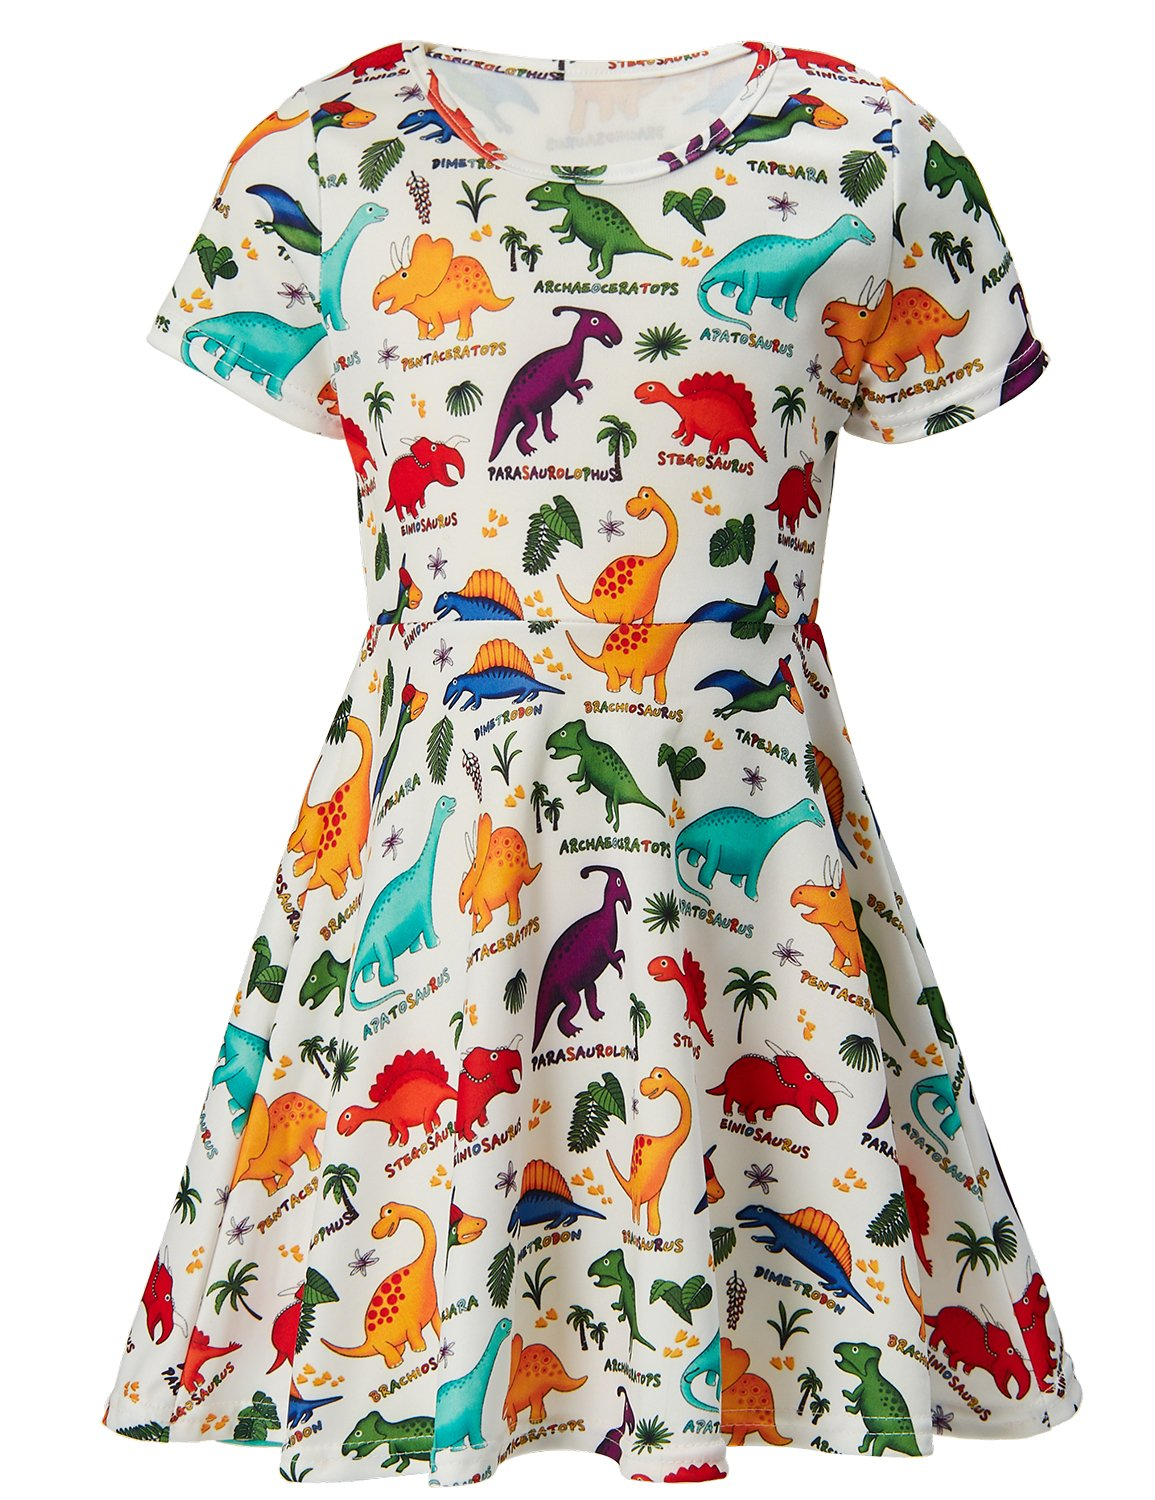 719656f3293e Galleon - RAISEVERN Toddler Girl's Dress Cute Dinosaurs Print Short Sleeve  Swing Skirt Casual Dress For Kids 2-3 Years